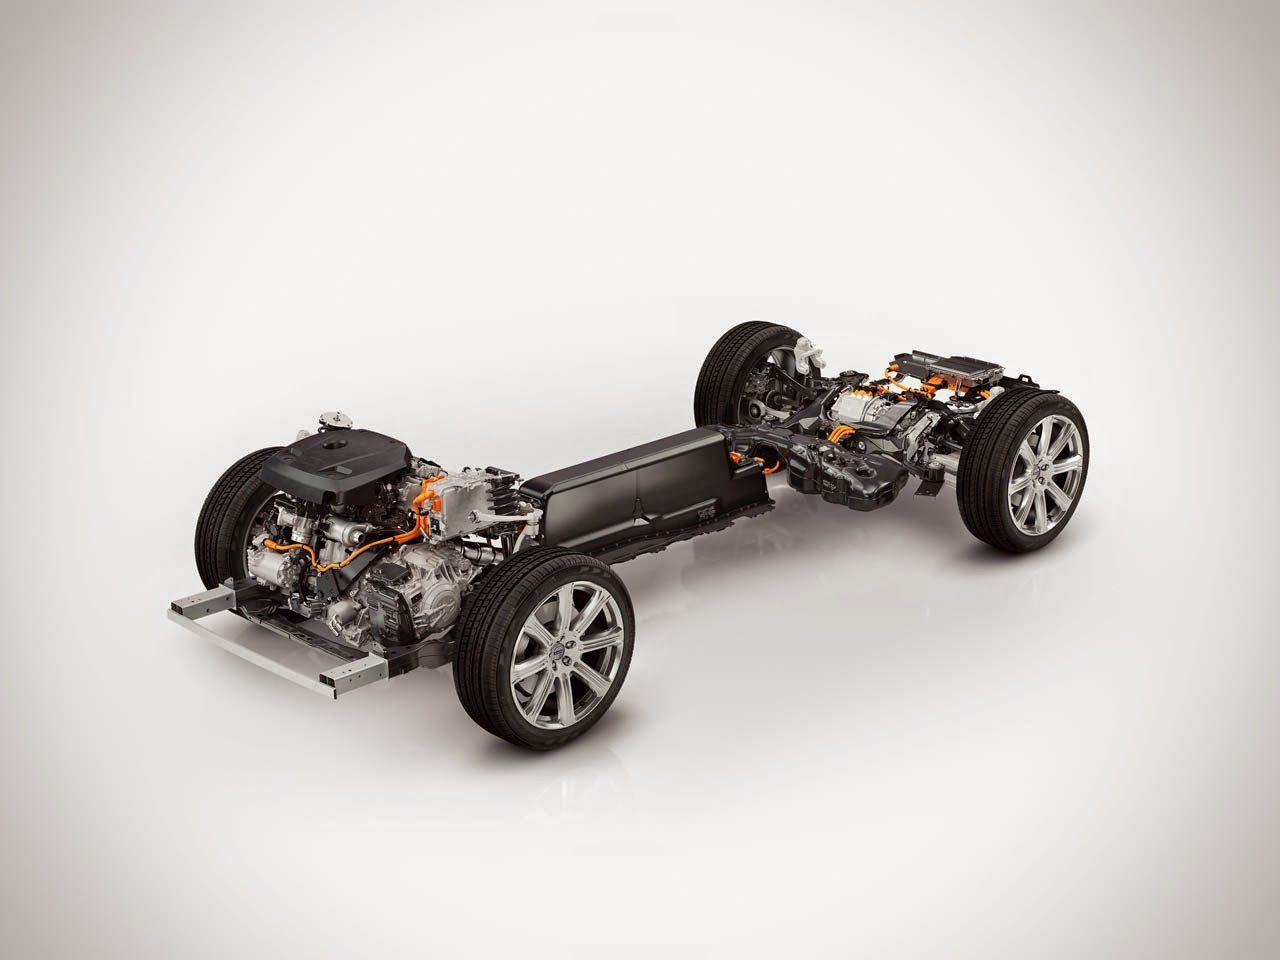 Volvo XC90 T8 chassis